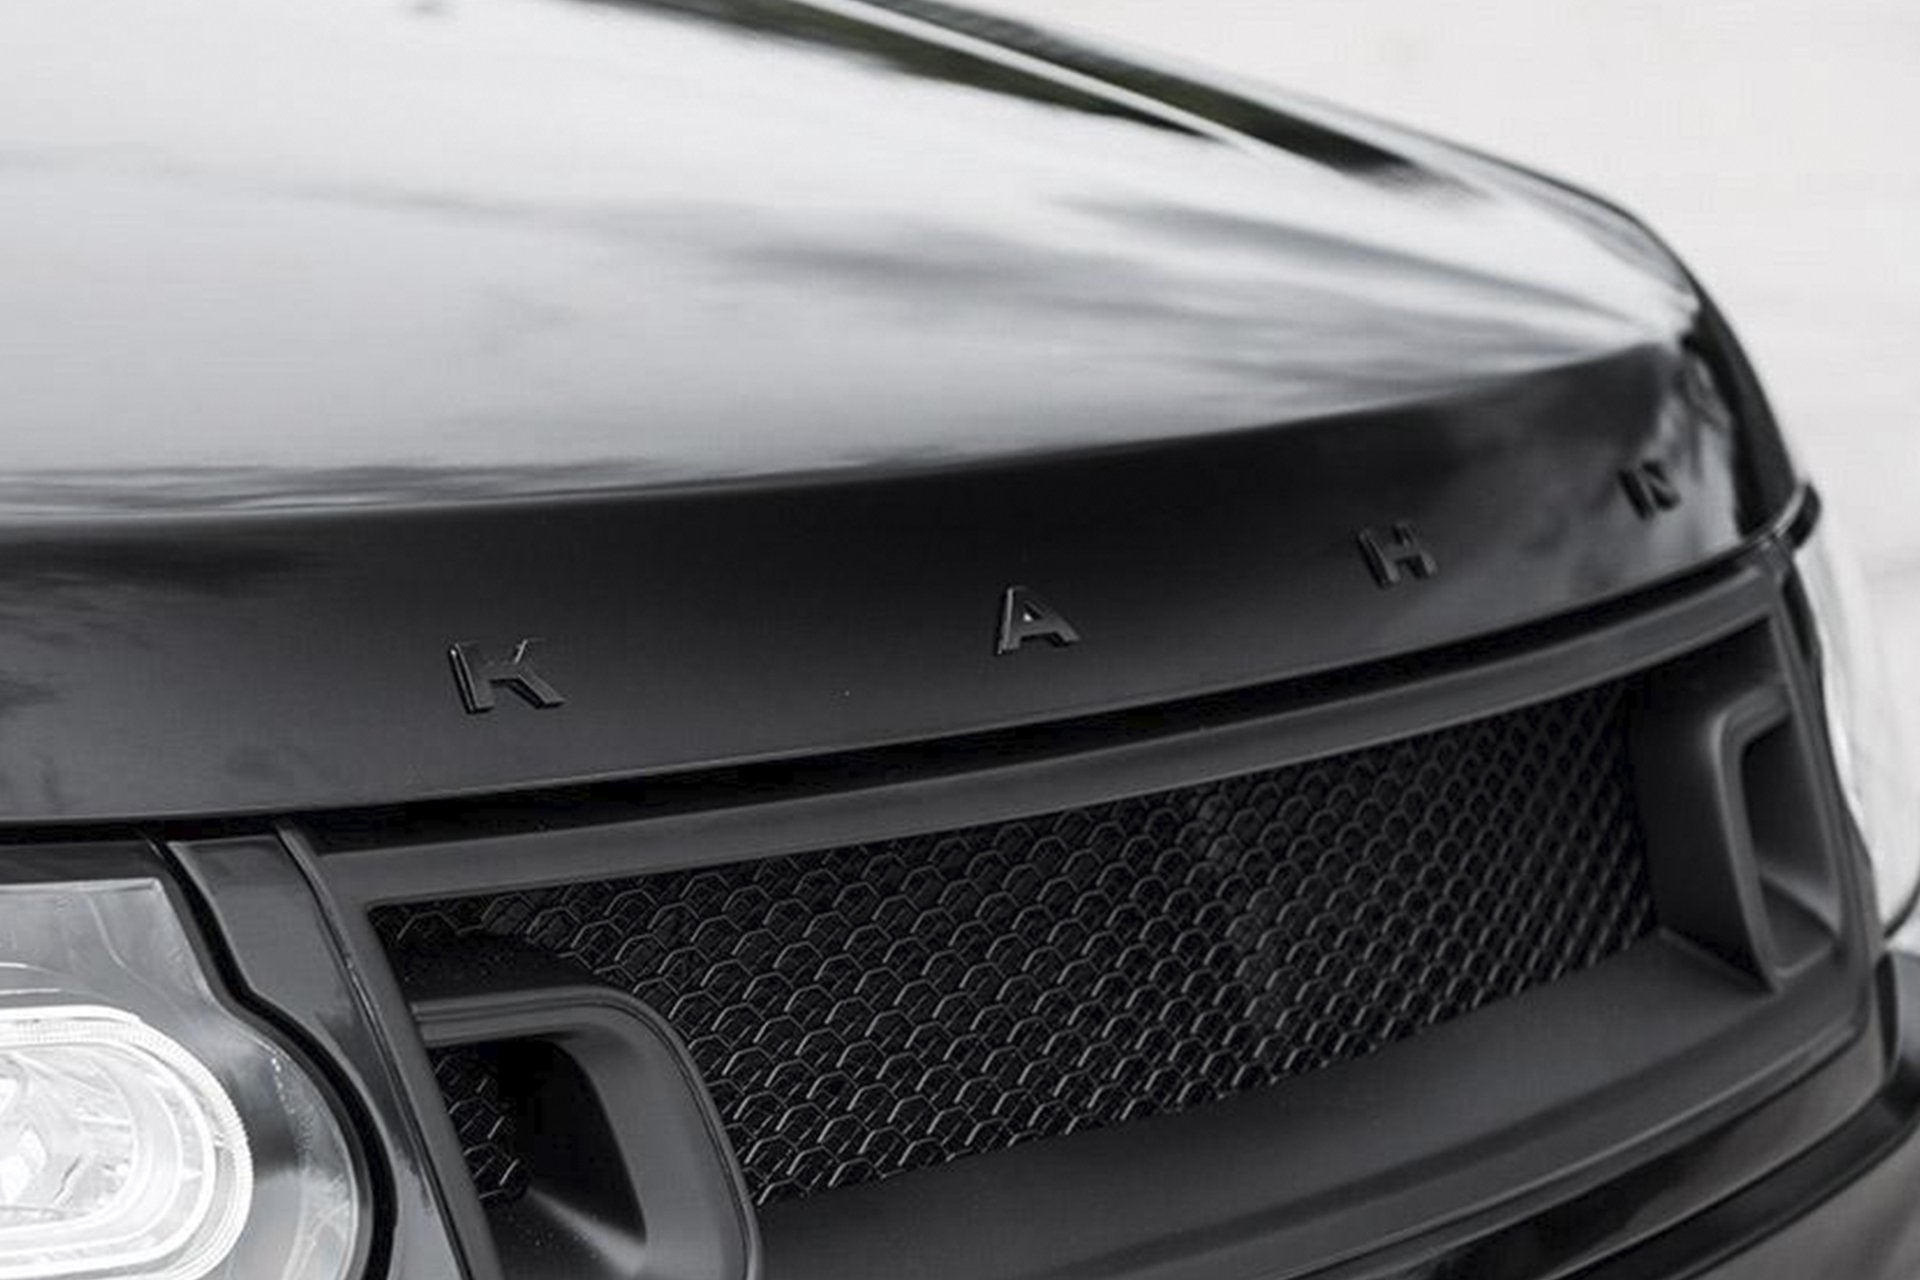 Range Rover (2012-2018) Rs Front Grille With 3D Mesh by Kahn - Image 2031